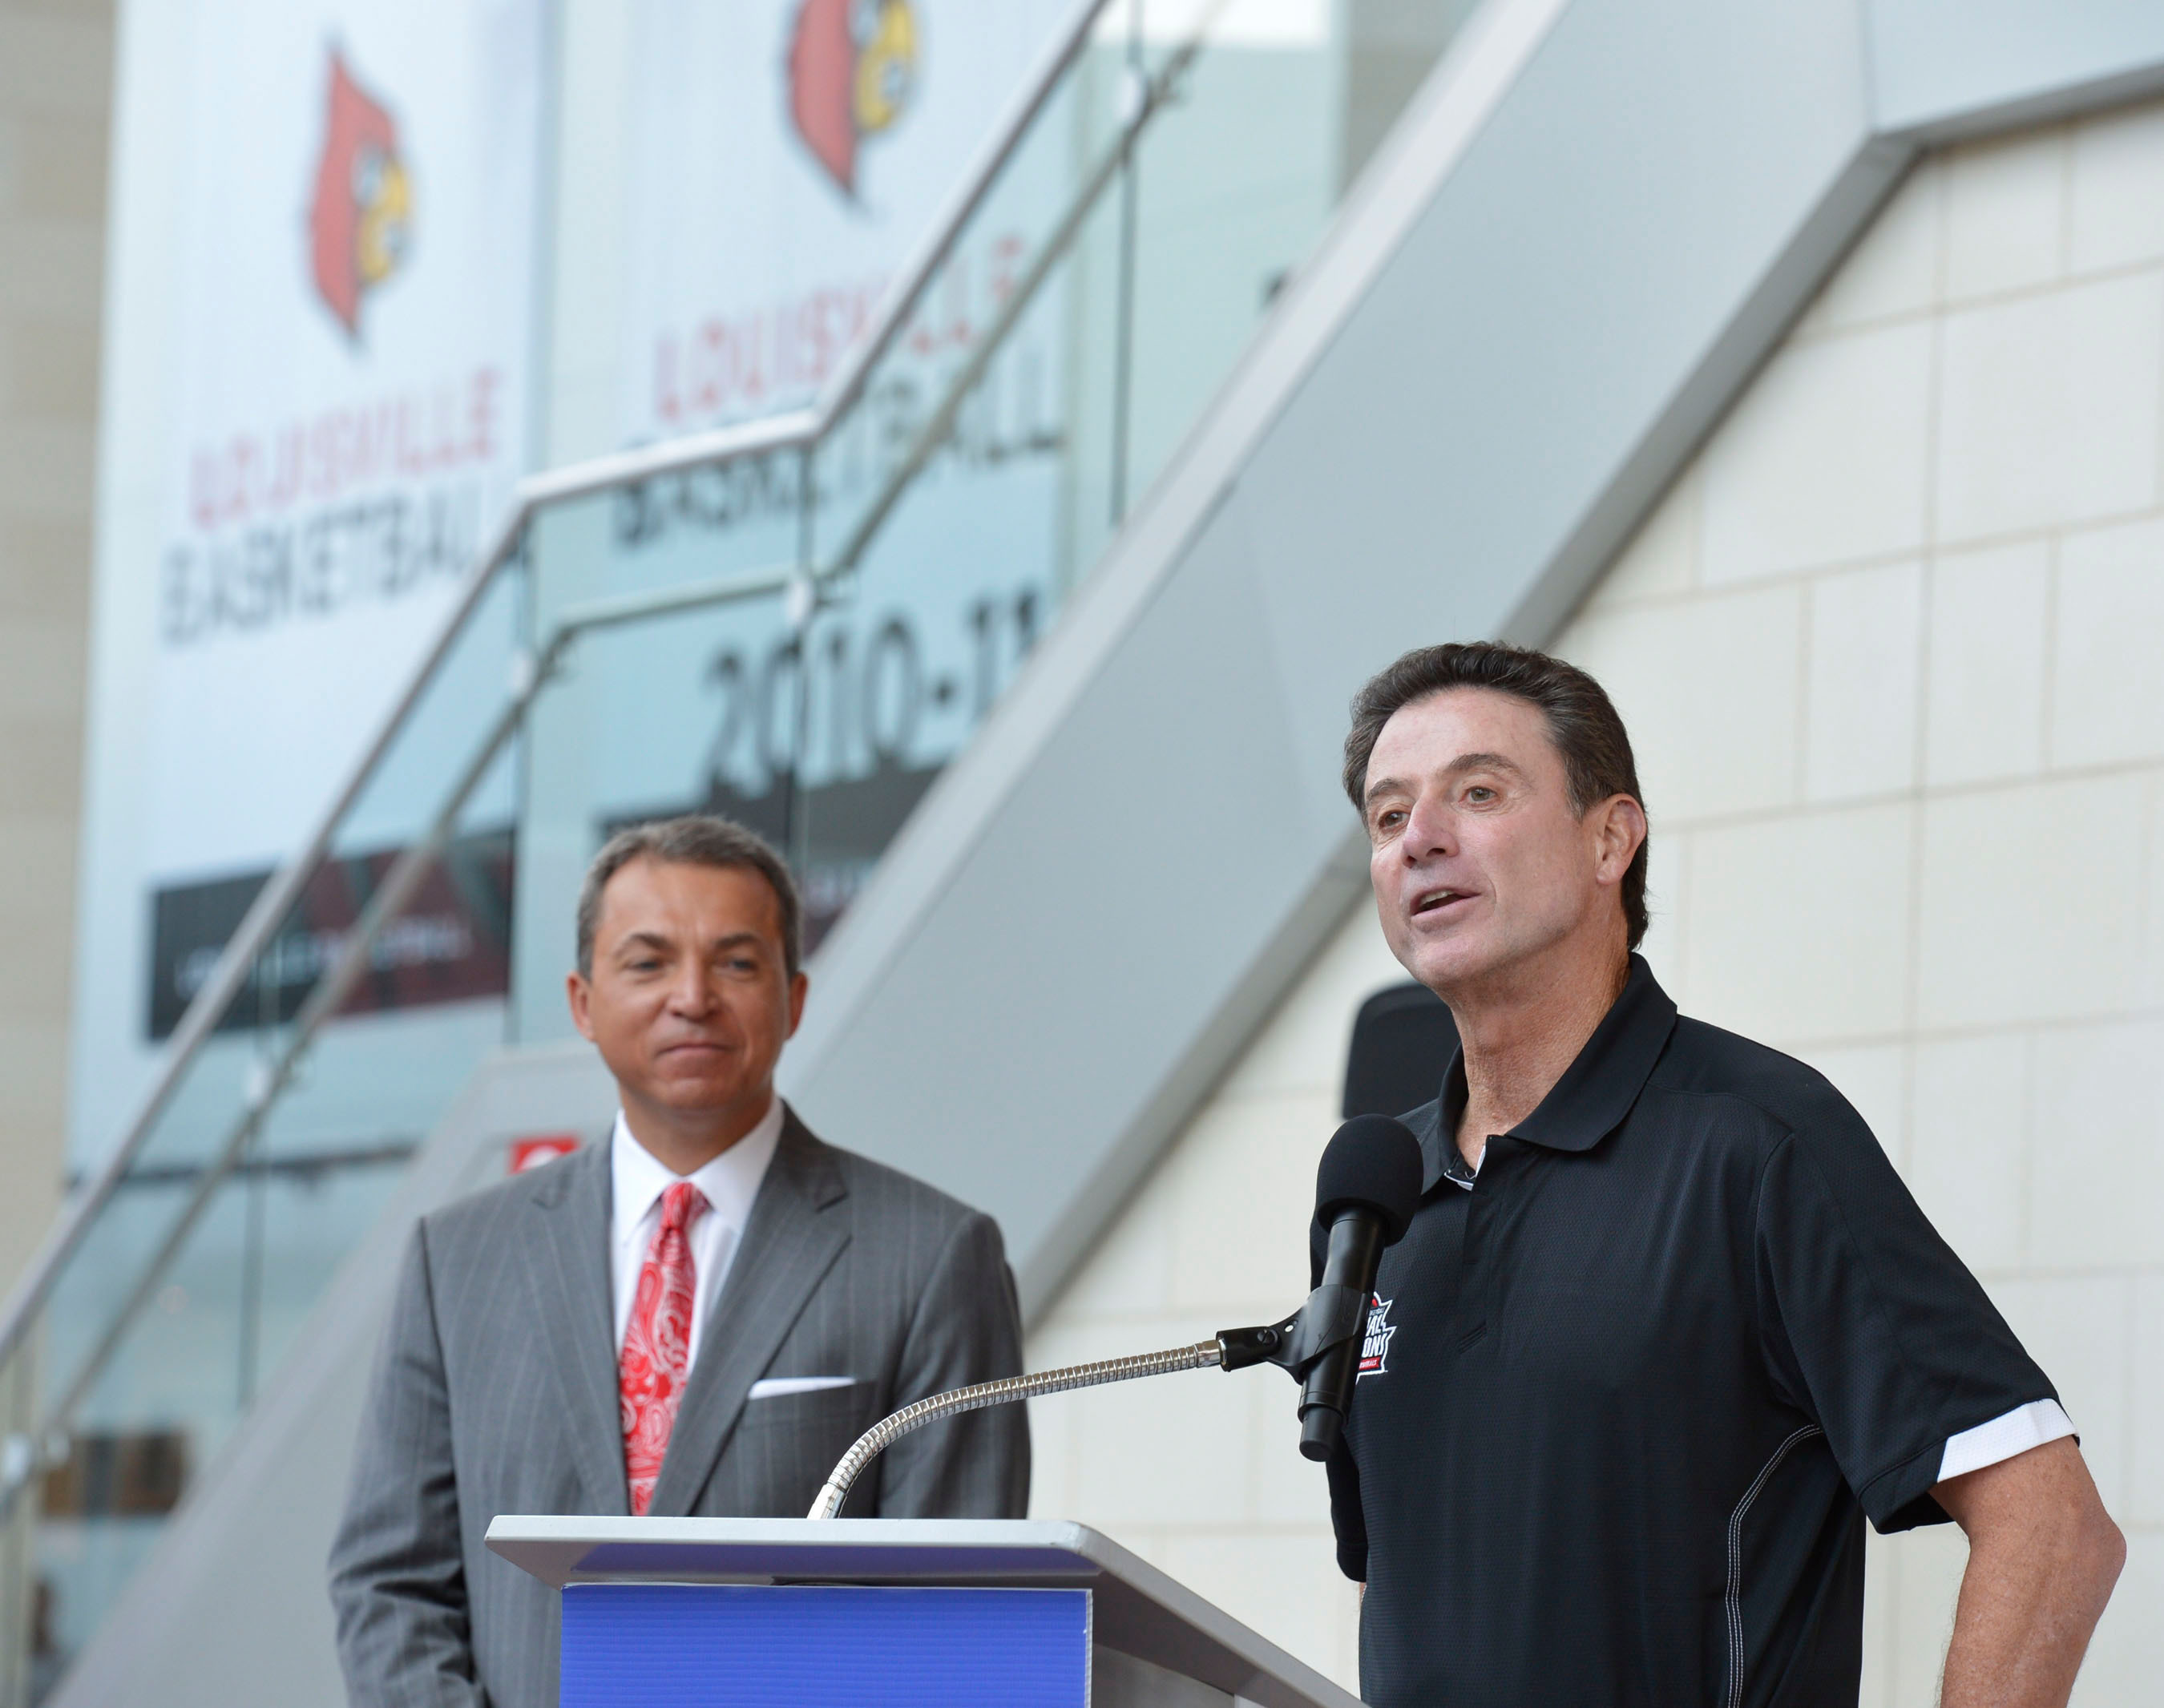 Dan Rivers (left), Northwestern Mutual managing partner for Kentucky, and University of Louisville Head Coach Rick Pitino (right) announce the 2013 NCAA Championship Floor sale. Pieces of the floor will be sold this fall to raise money for the fight against pediatric cancer.  (PRNewsFoto/Northwestern Mutual)